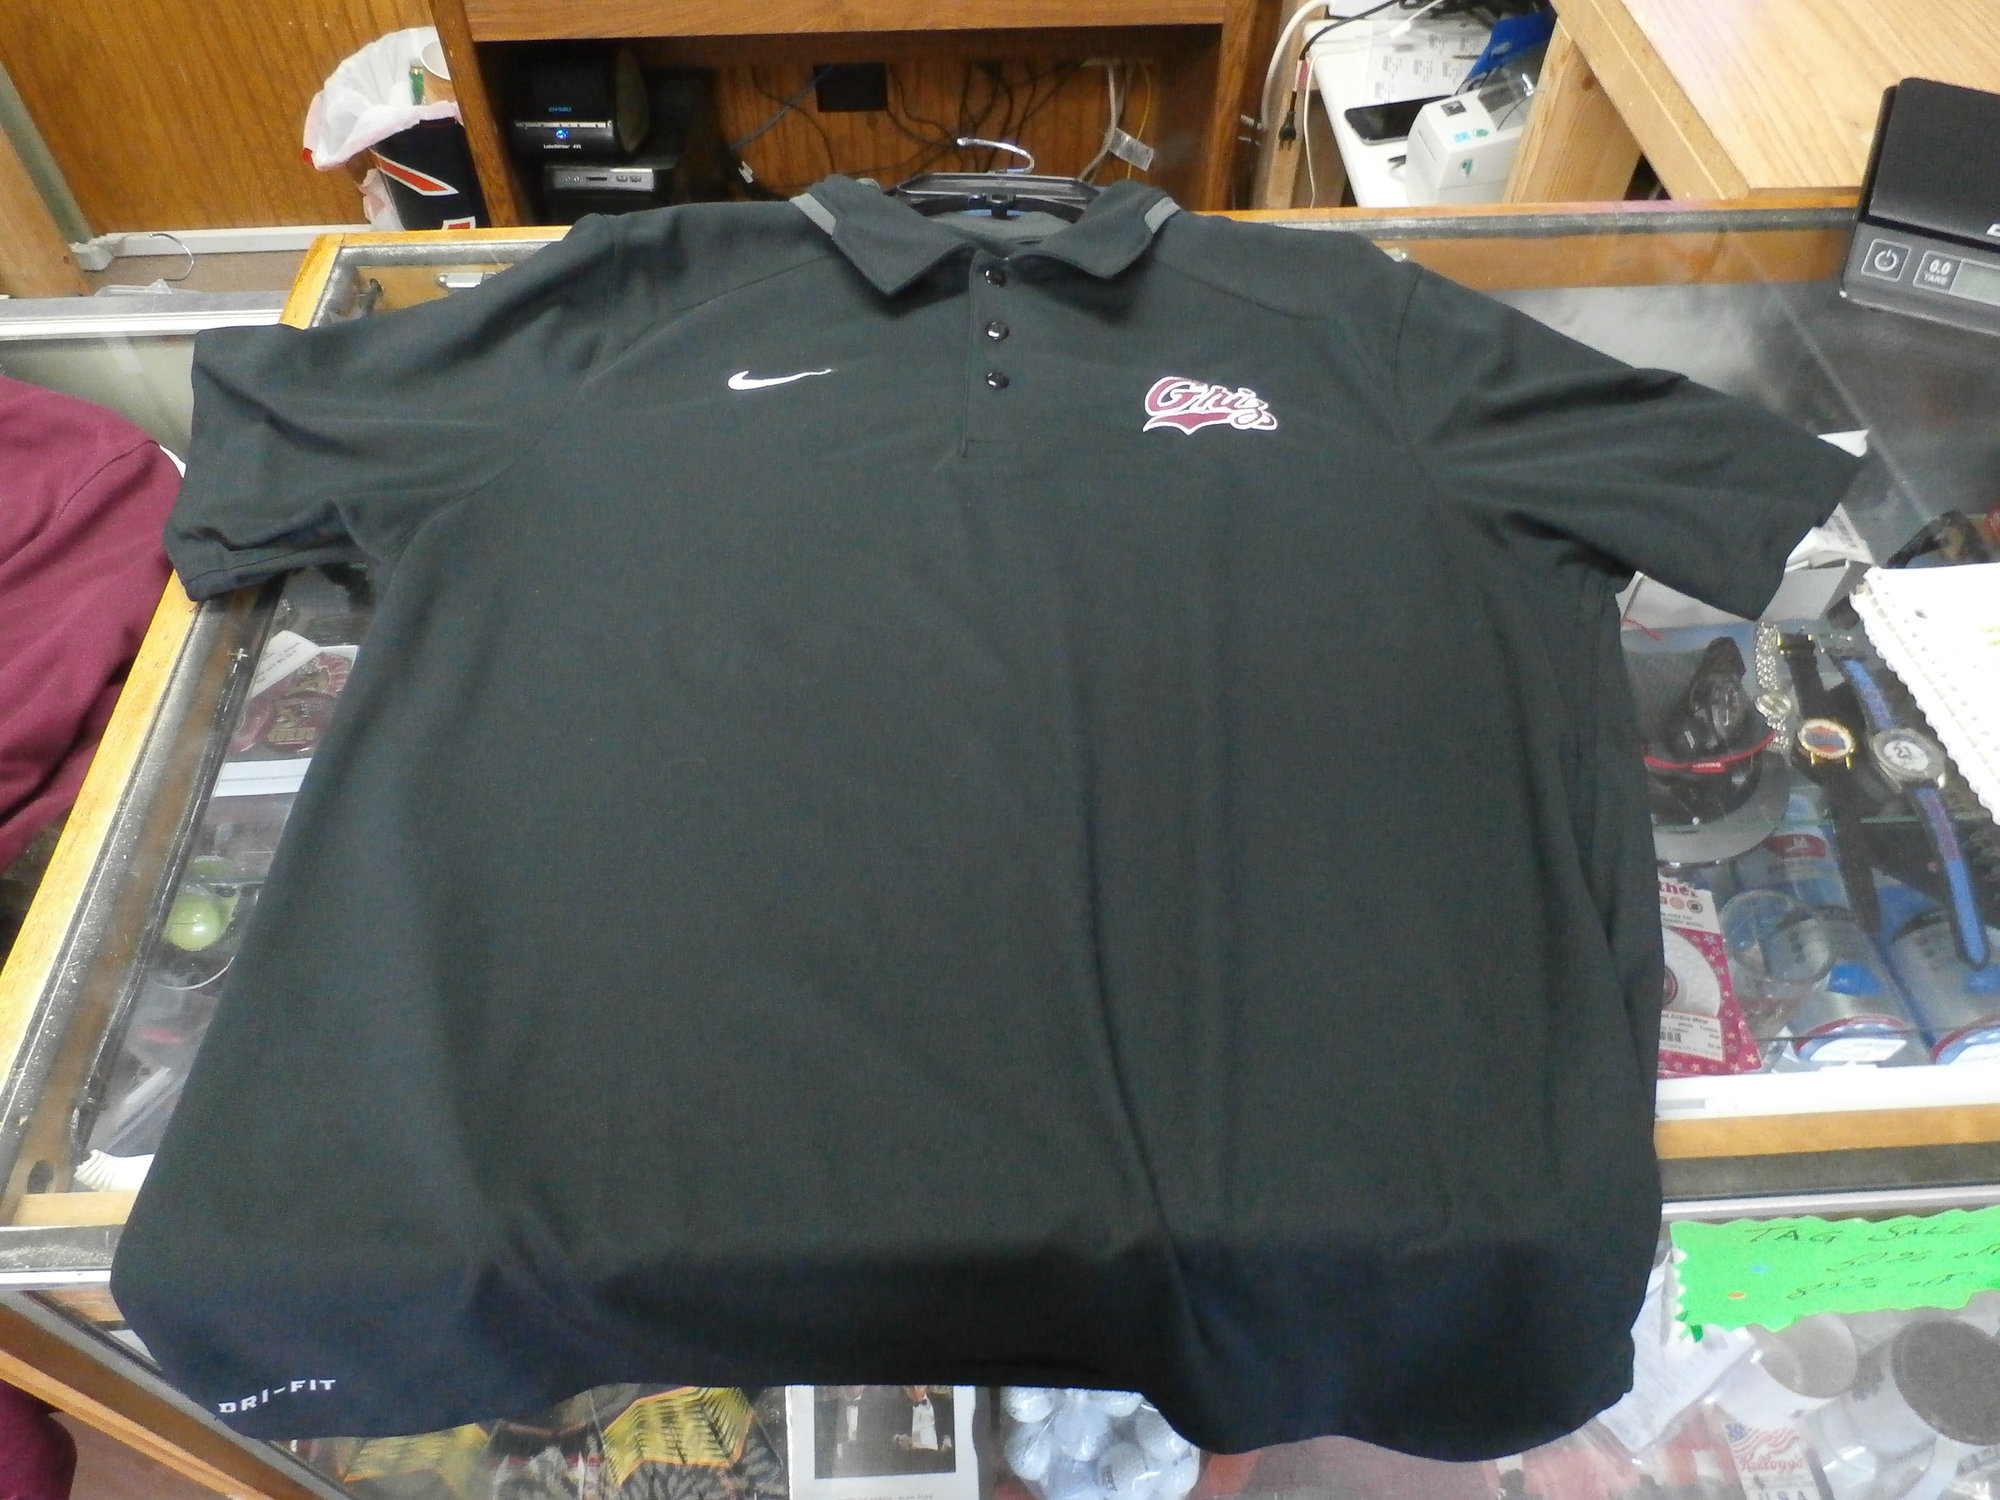 Montana Grizzlies Nike Dri-Fit polo shirt size L black 100% Polyester #21678